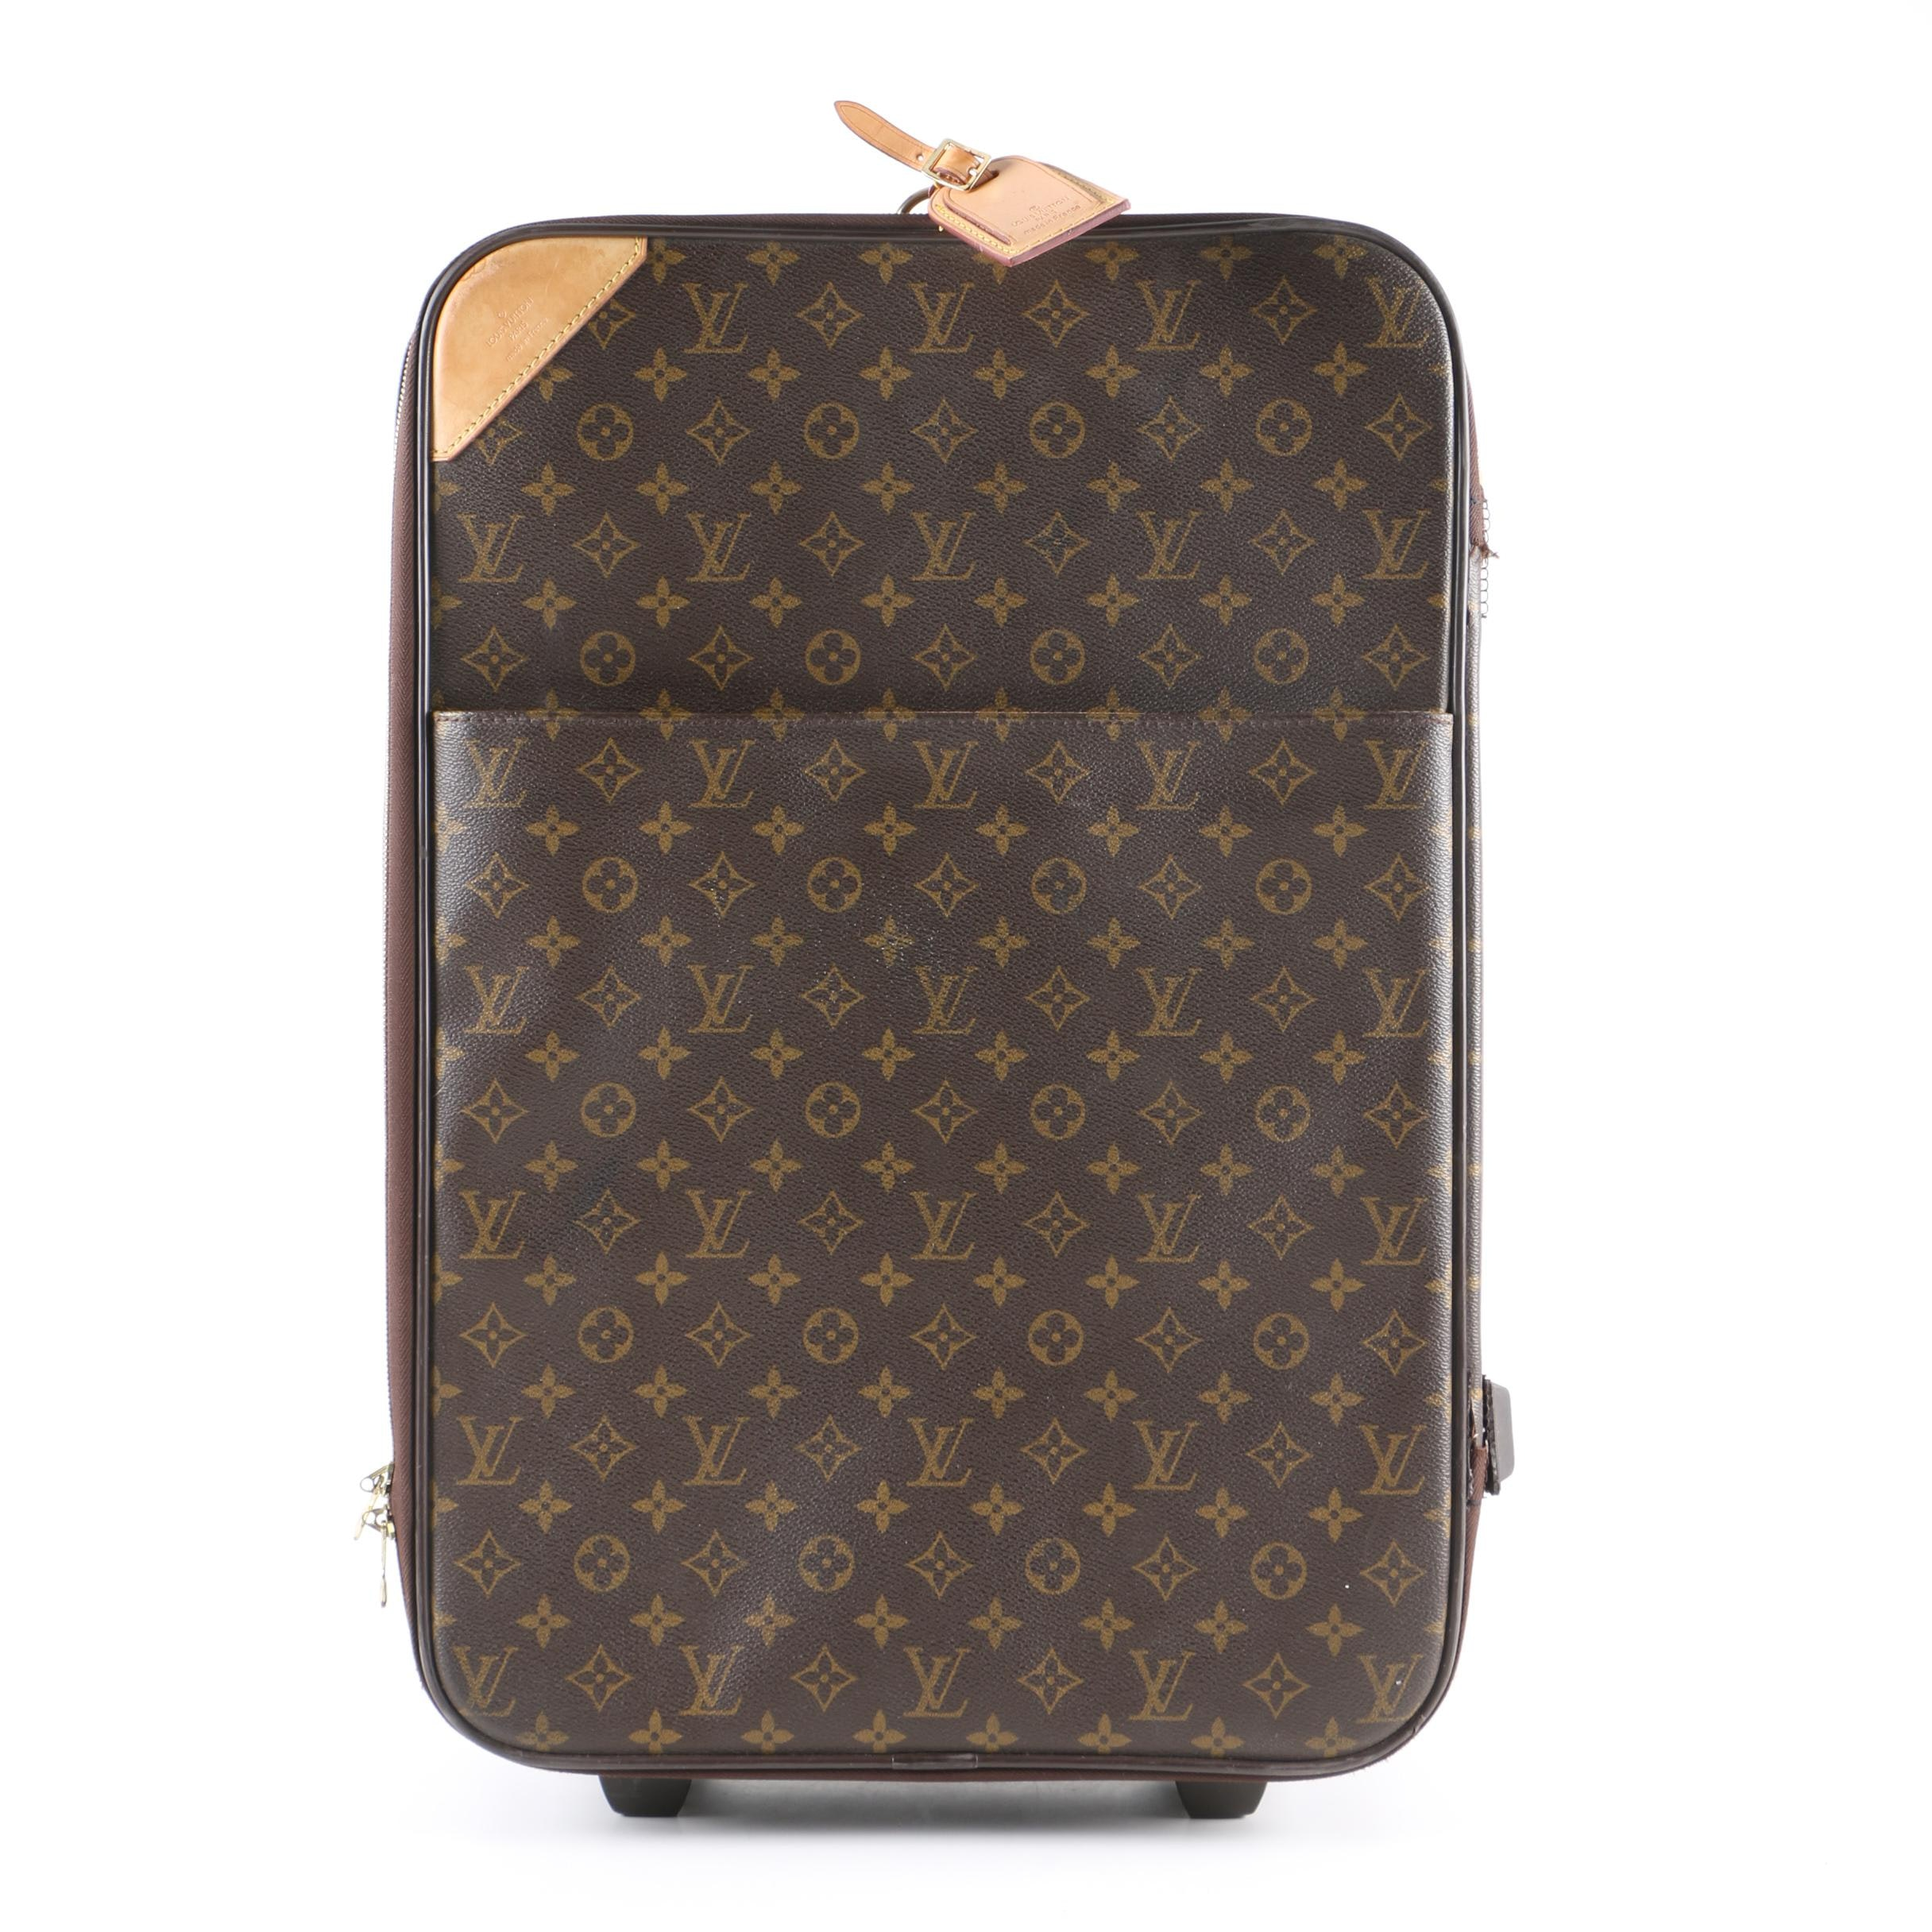 Louis Vuitton of Paris Monogram Coated Canvas Rolling Suitcase